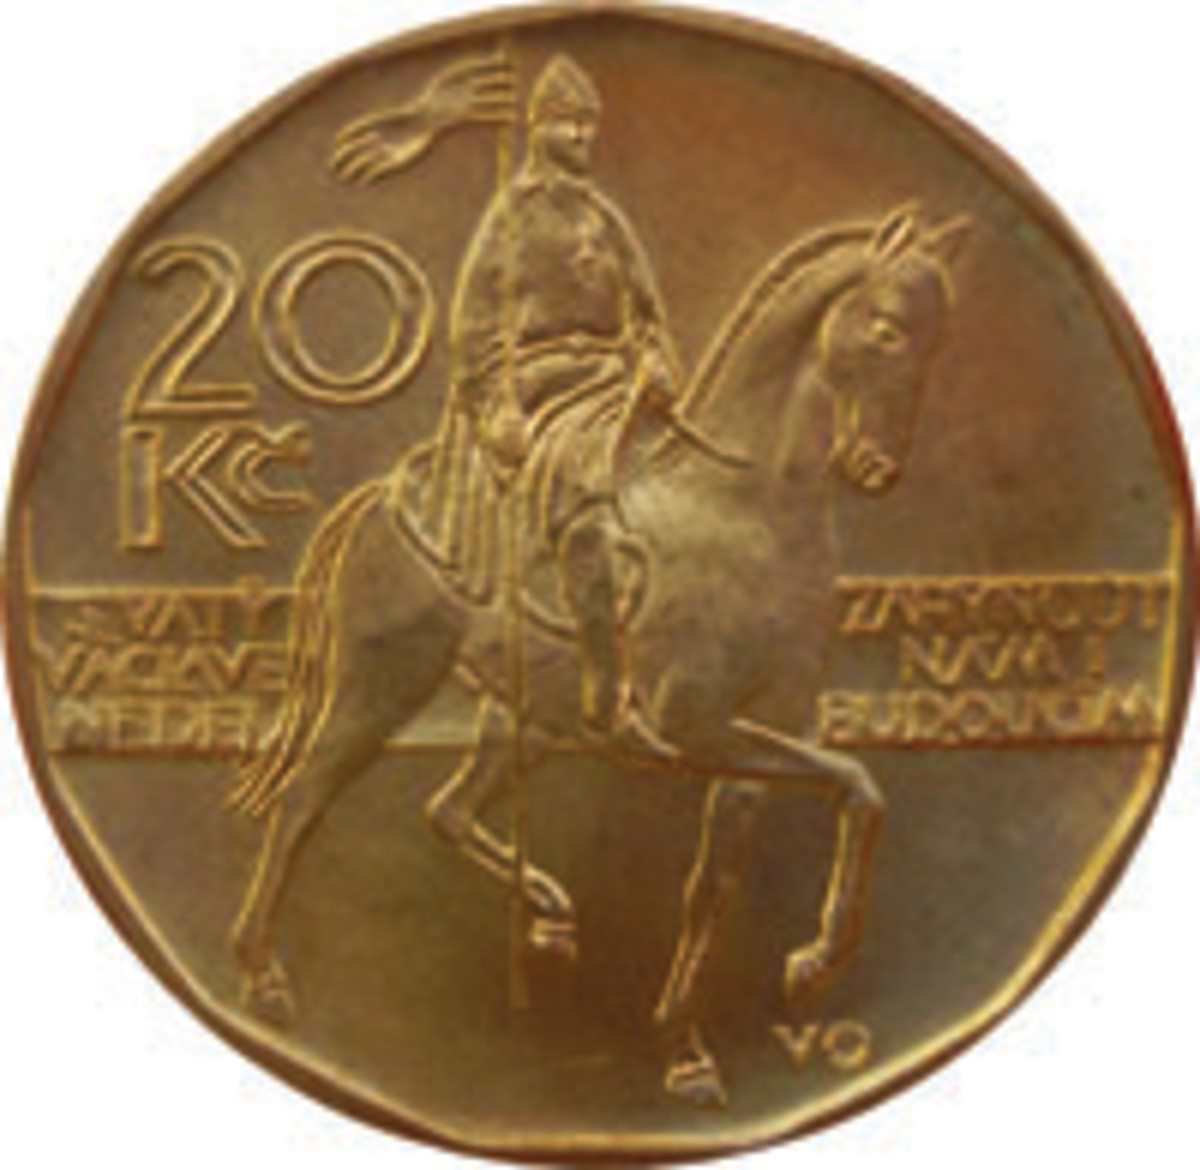 Duke Wenceslas returns, right, on the first issue brass-plated 20 korun, KM-5, introduced in 1993 by the new Czech Republic. (Image courtesy www.ha.com)